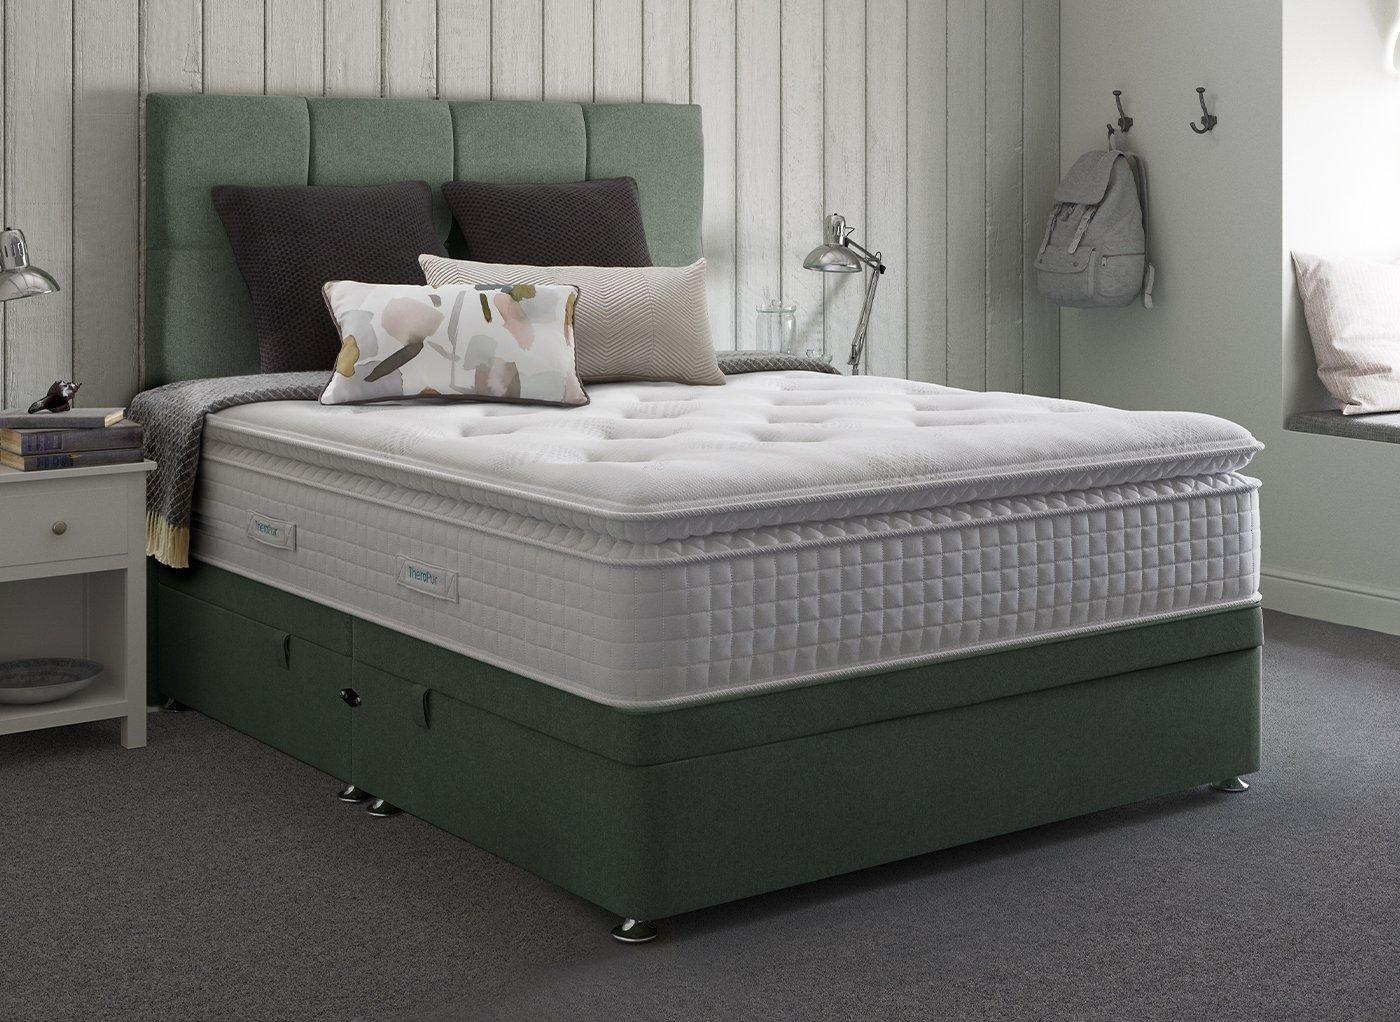 Therapur 4'0 Ottoman Base Only Tweed Mint 4'0 Small double